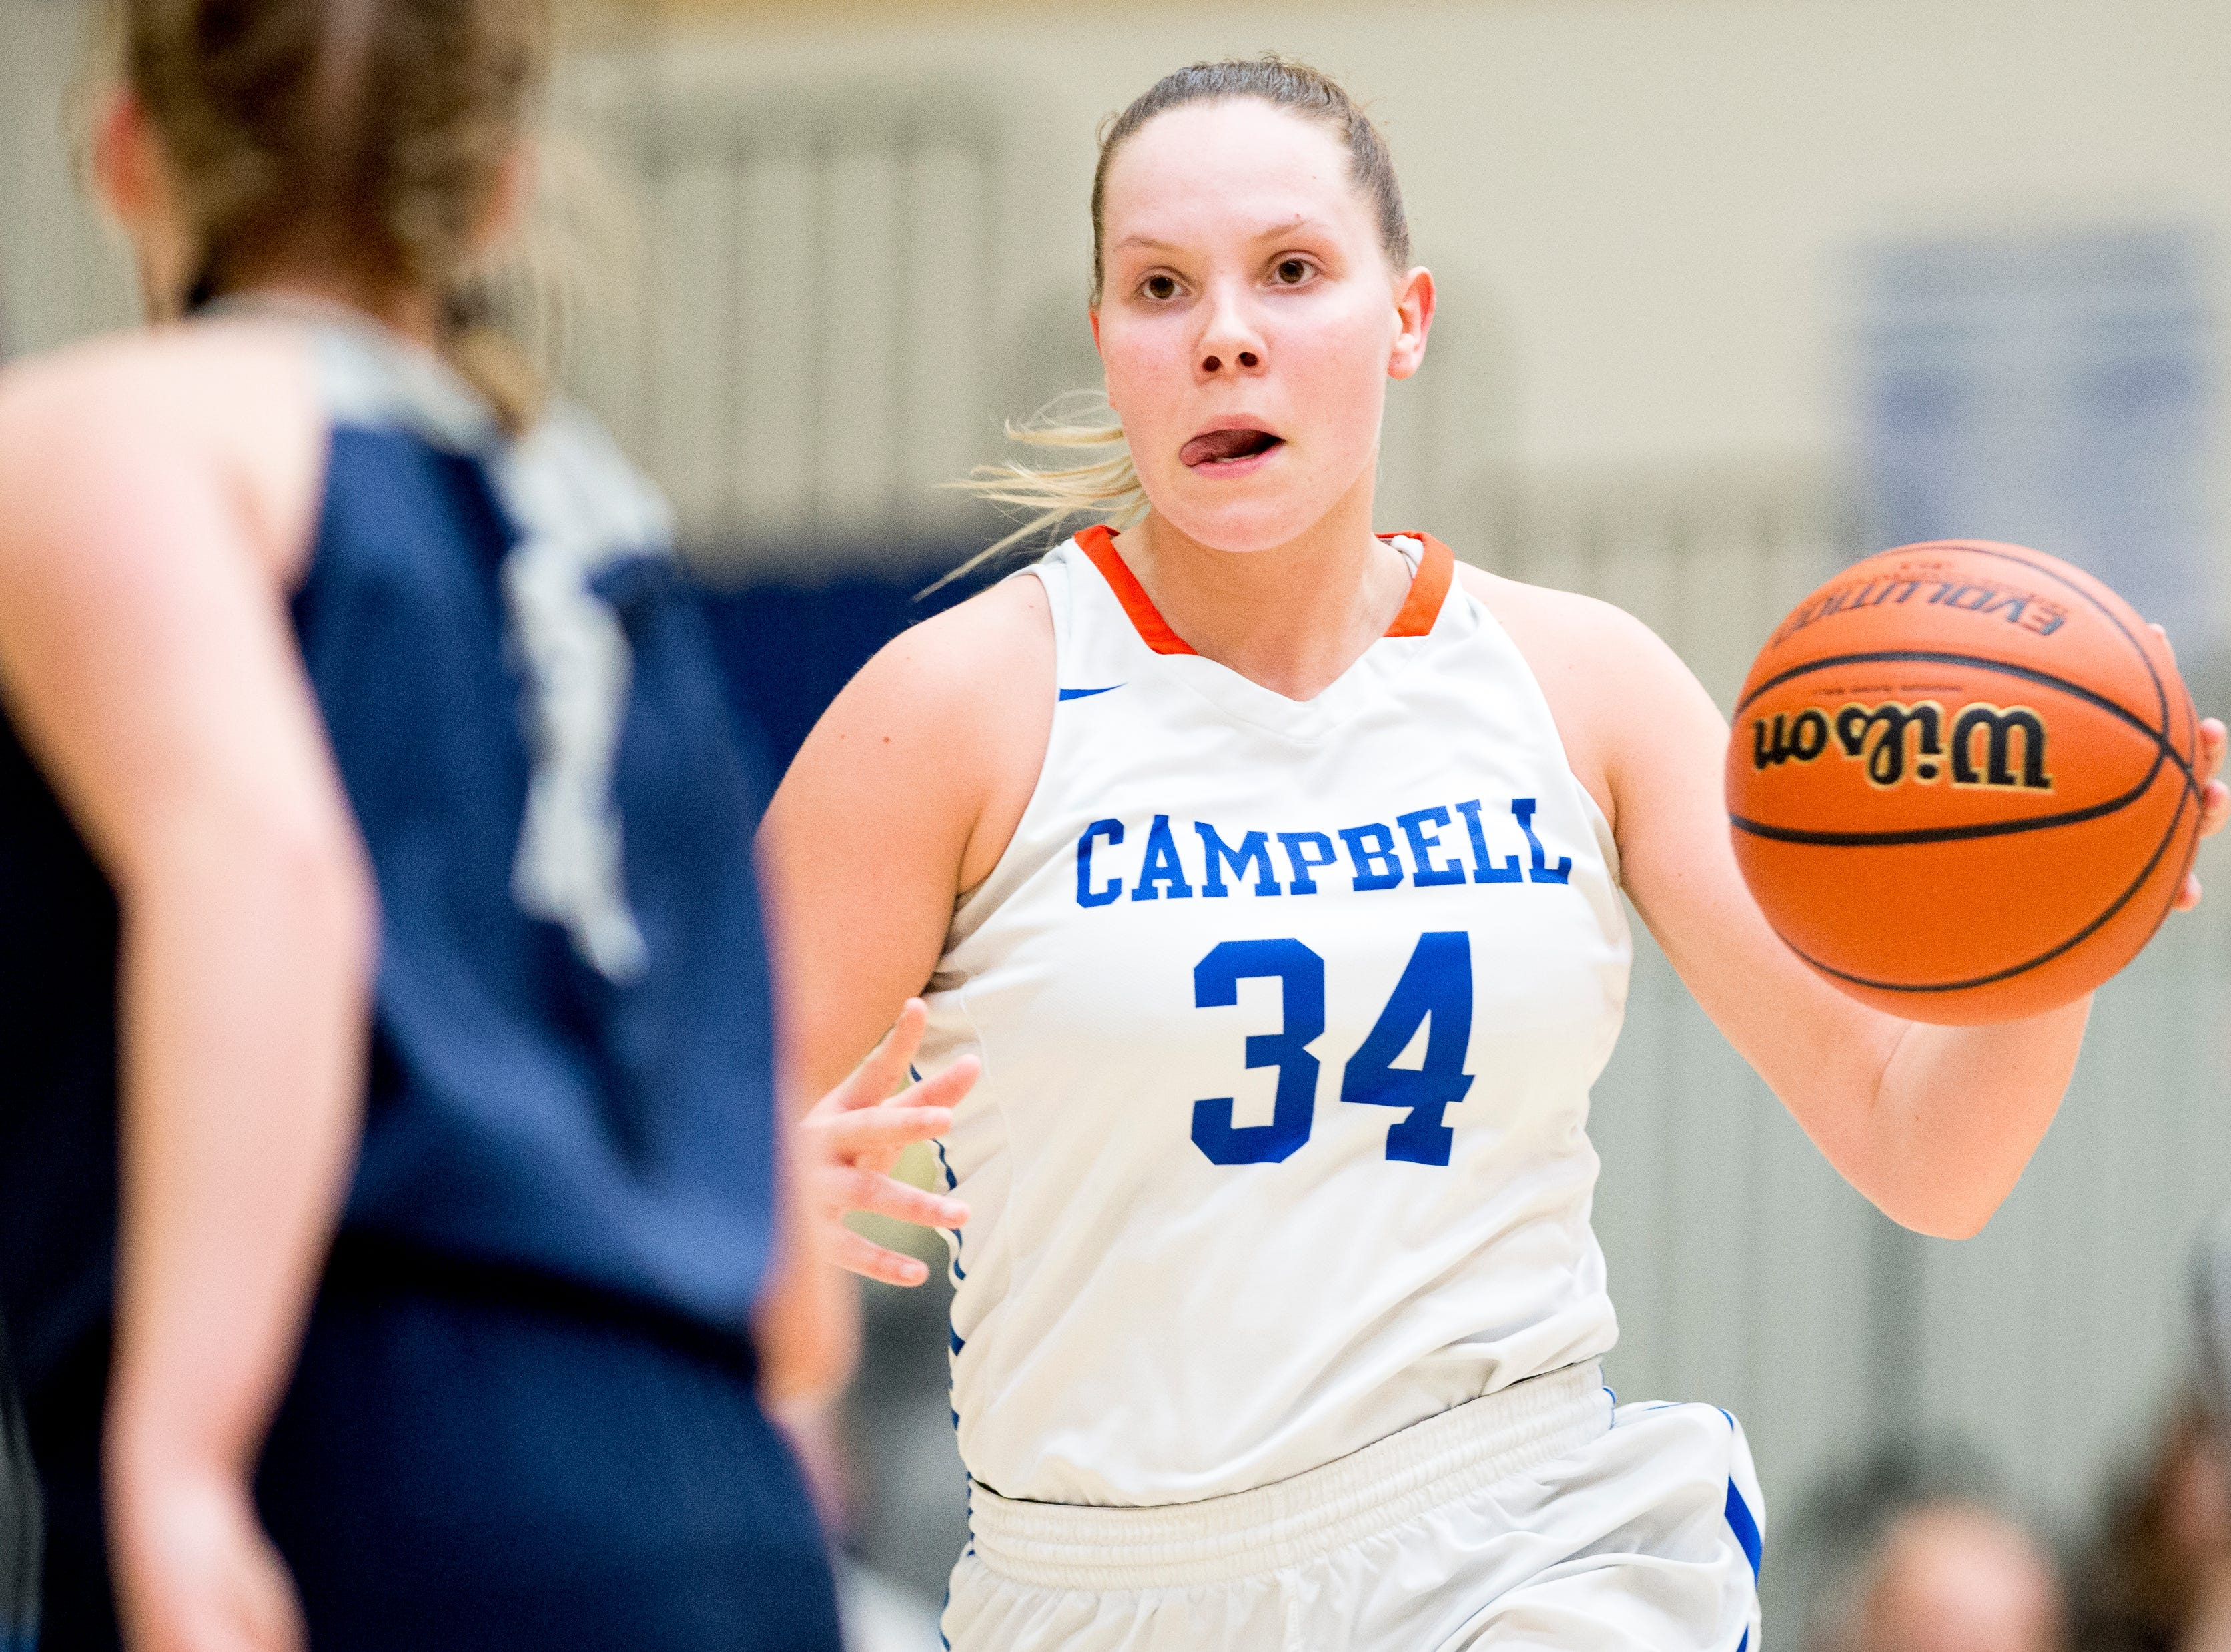 Campbell County's Haley Comer (34) dribbles down the court during a game between semifinal game between Anderson County and Campbell County at Karns High School in Knoxville, Tennessee on Saturday, February 16, 2019.